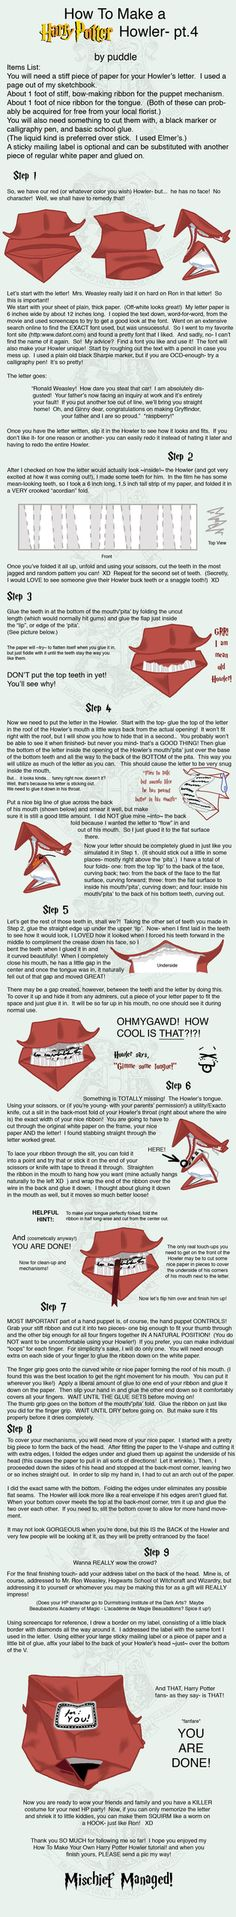 Full instructions on how to make a Howler.